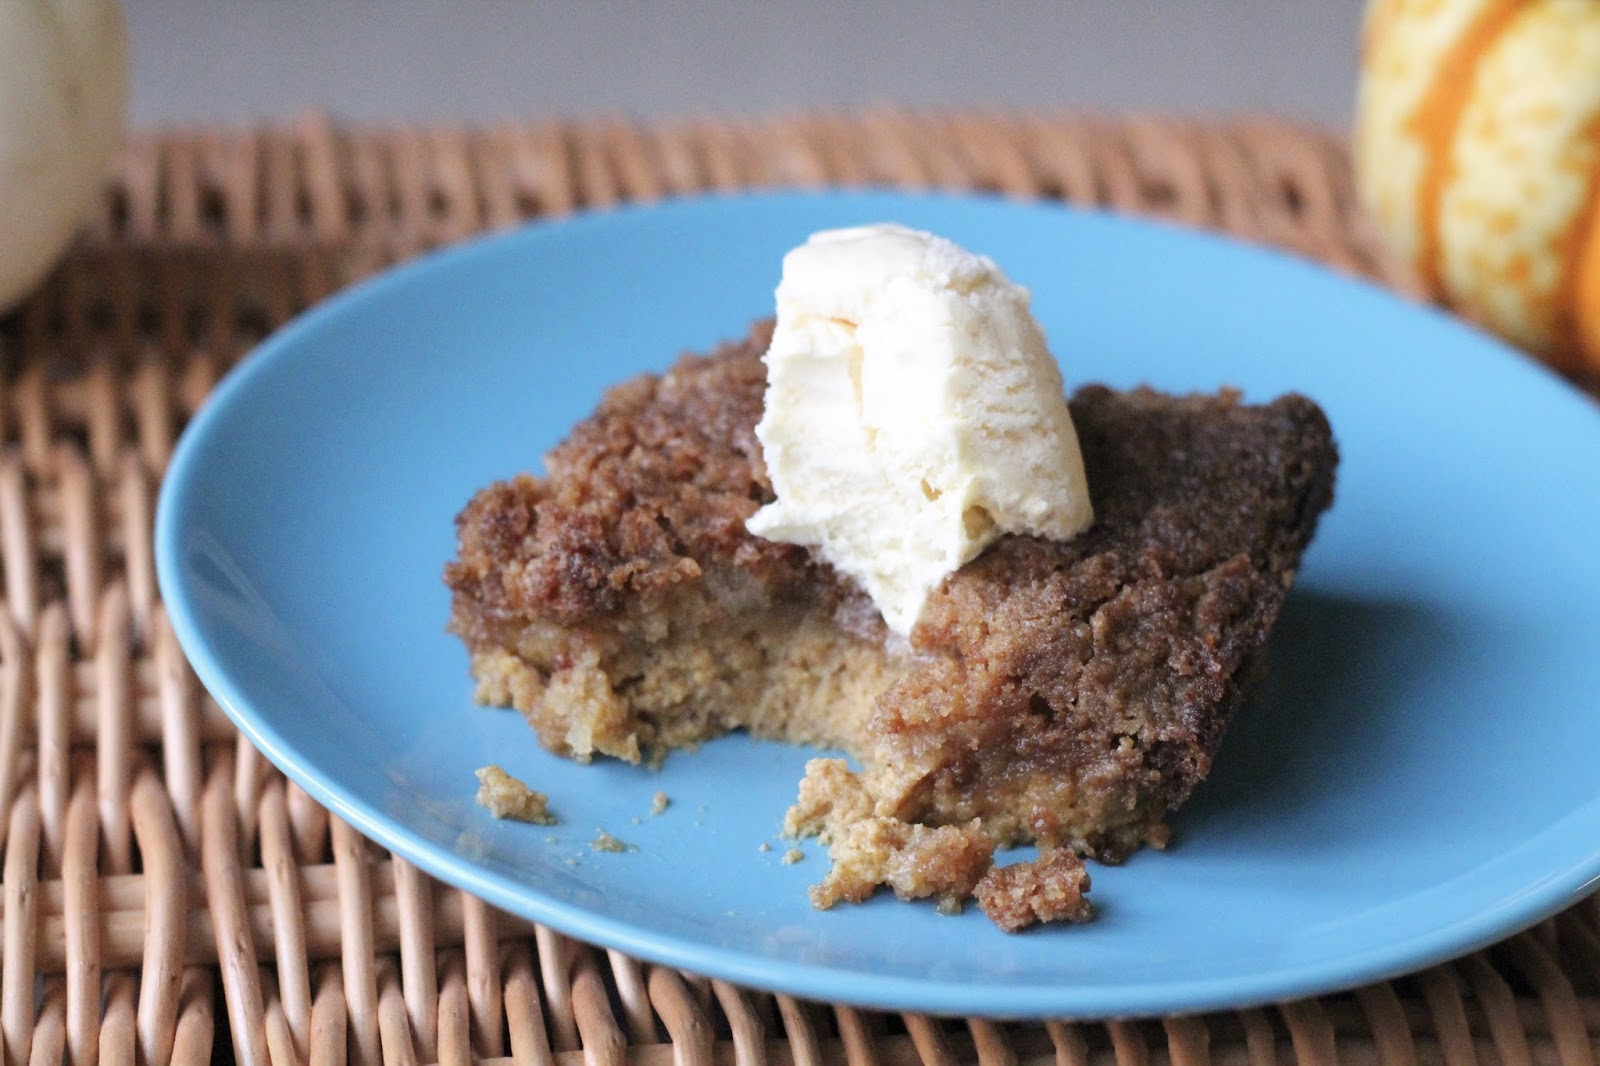 Cake Recipes In Pinterest: Trying Recipes I Found On Pinterest